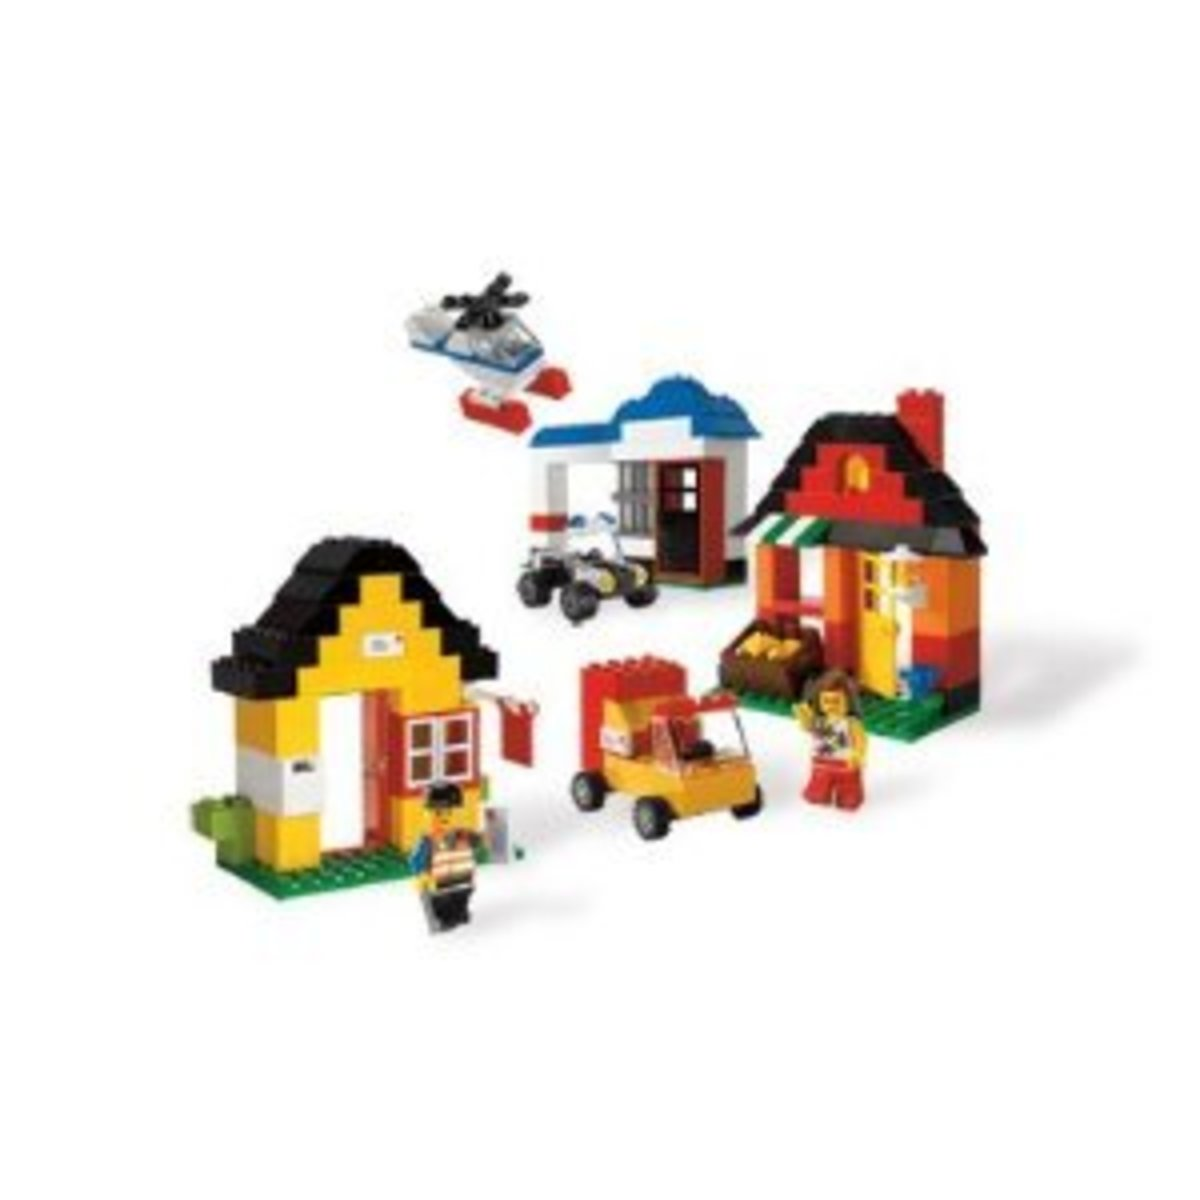 My Lego Town